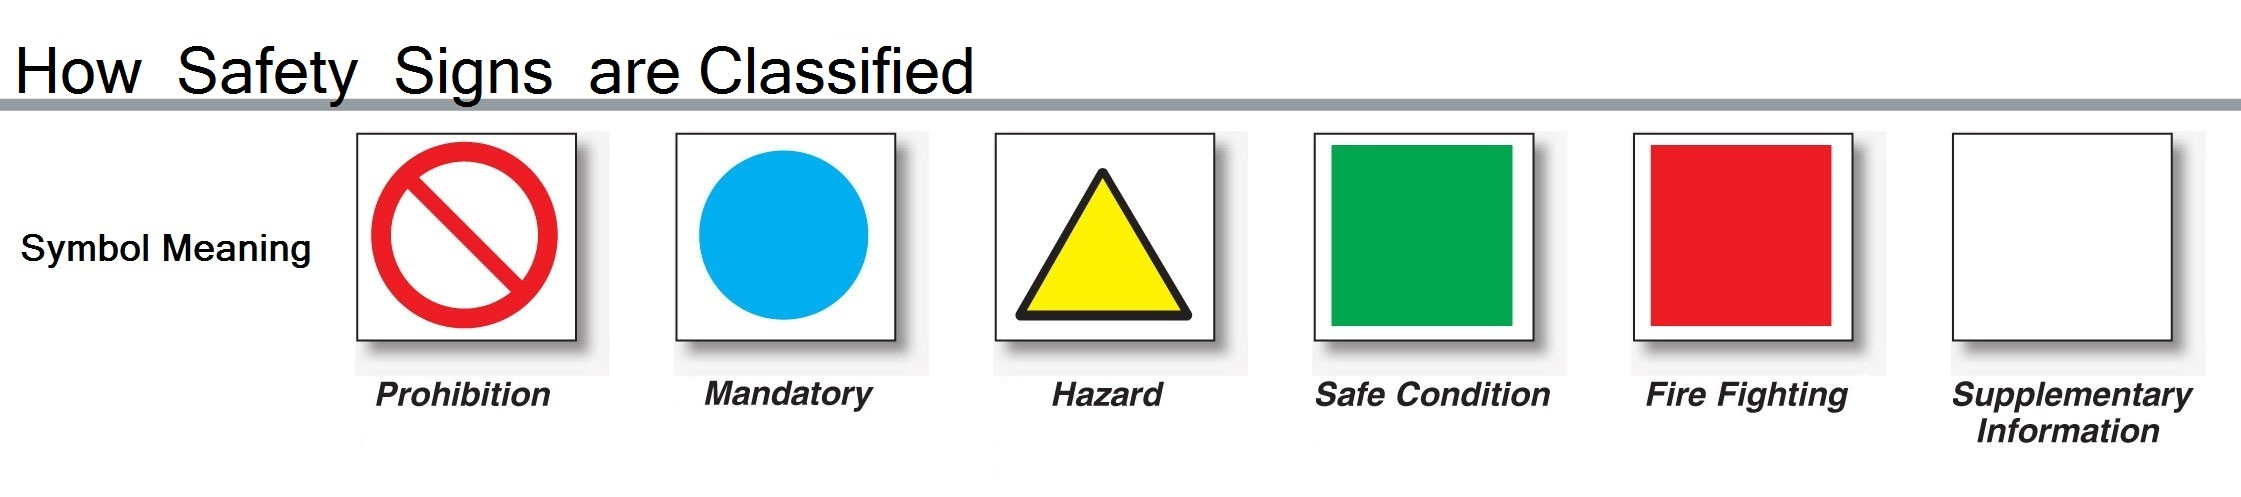 Classification of safety signs